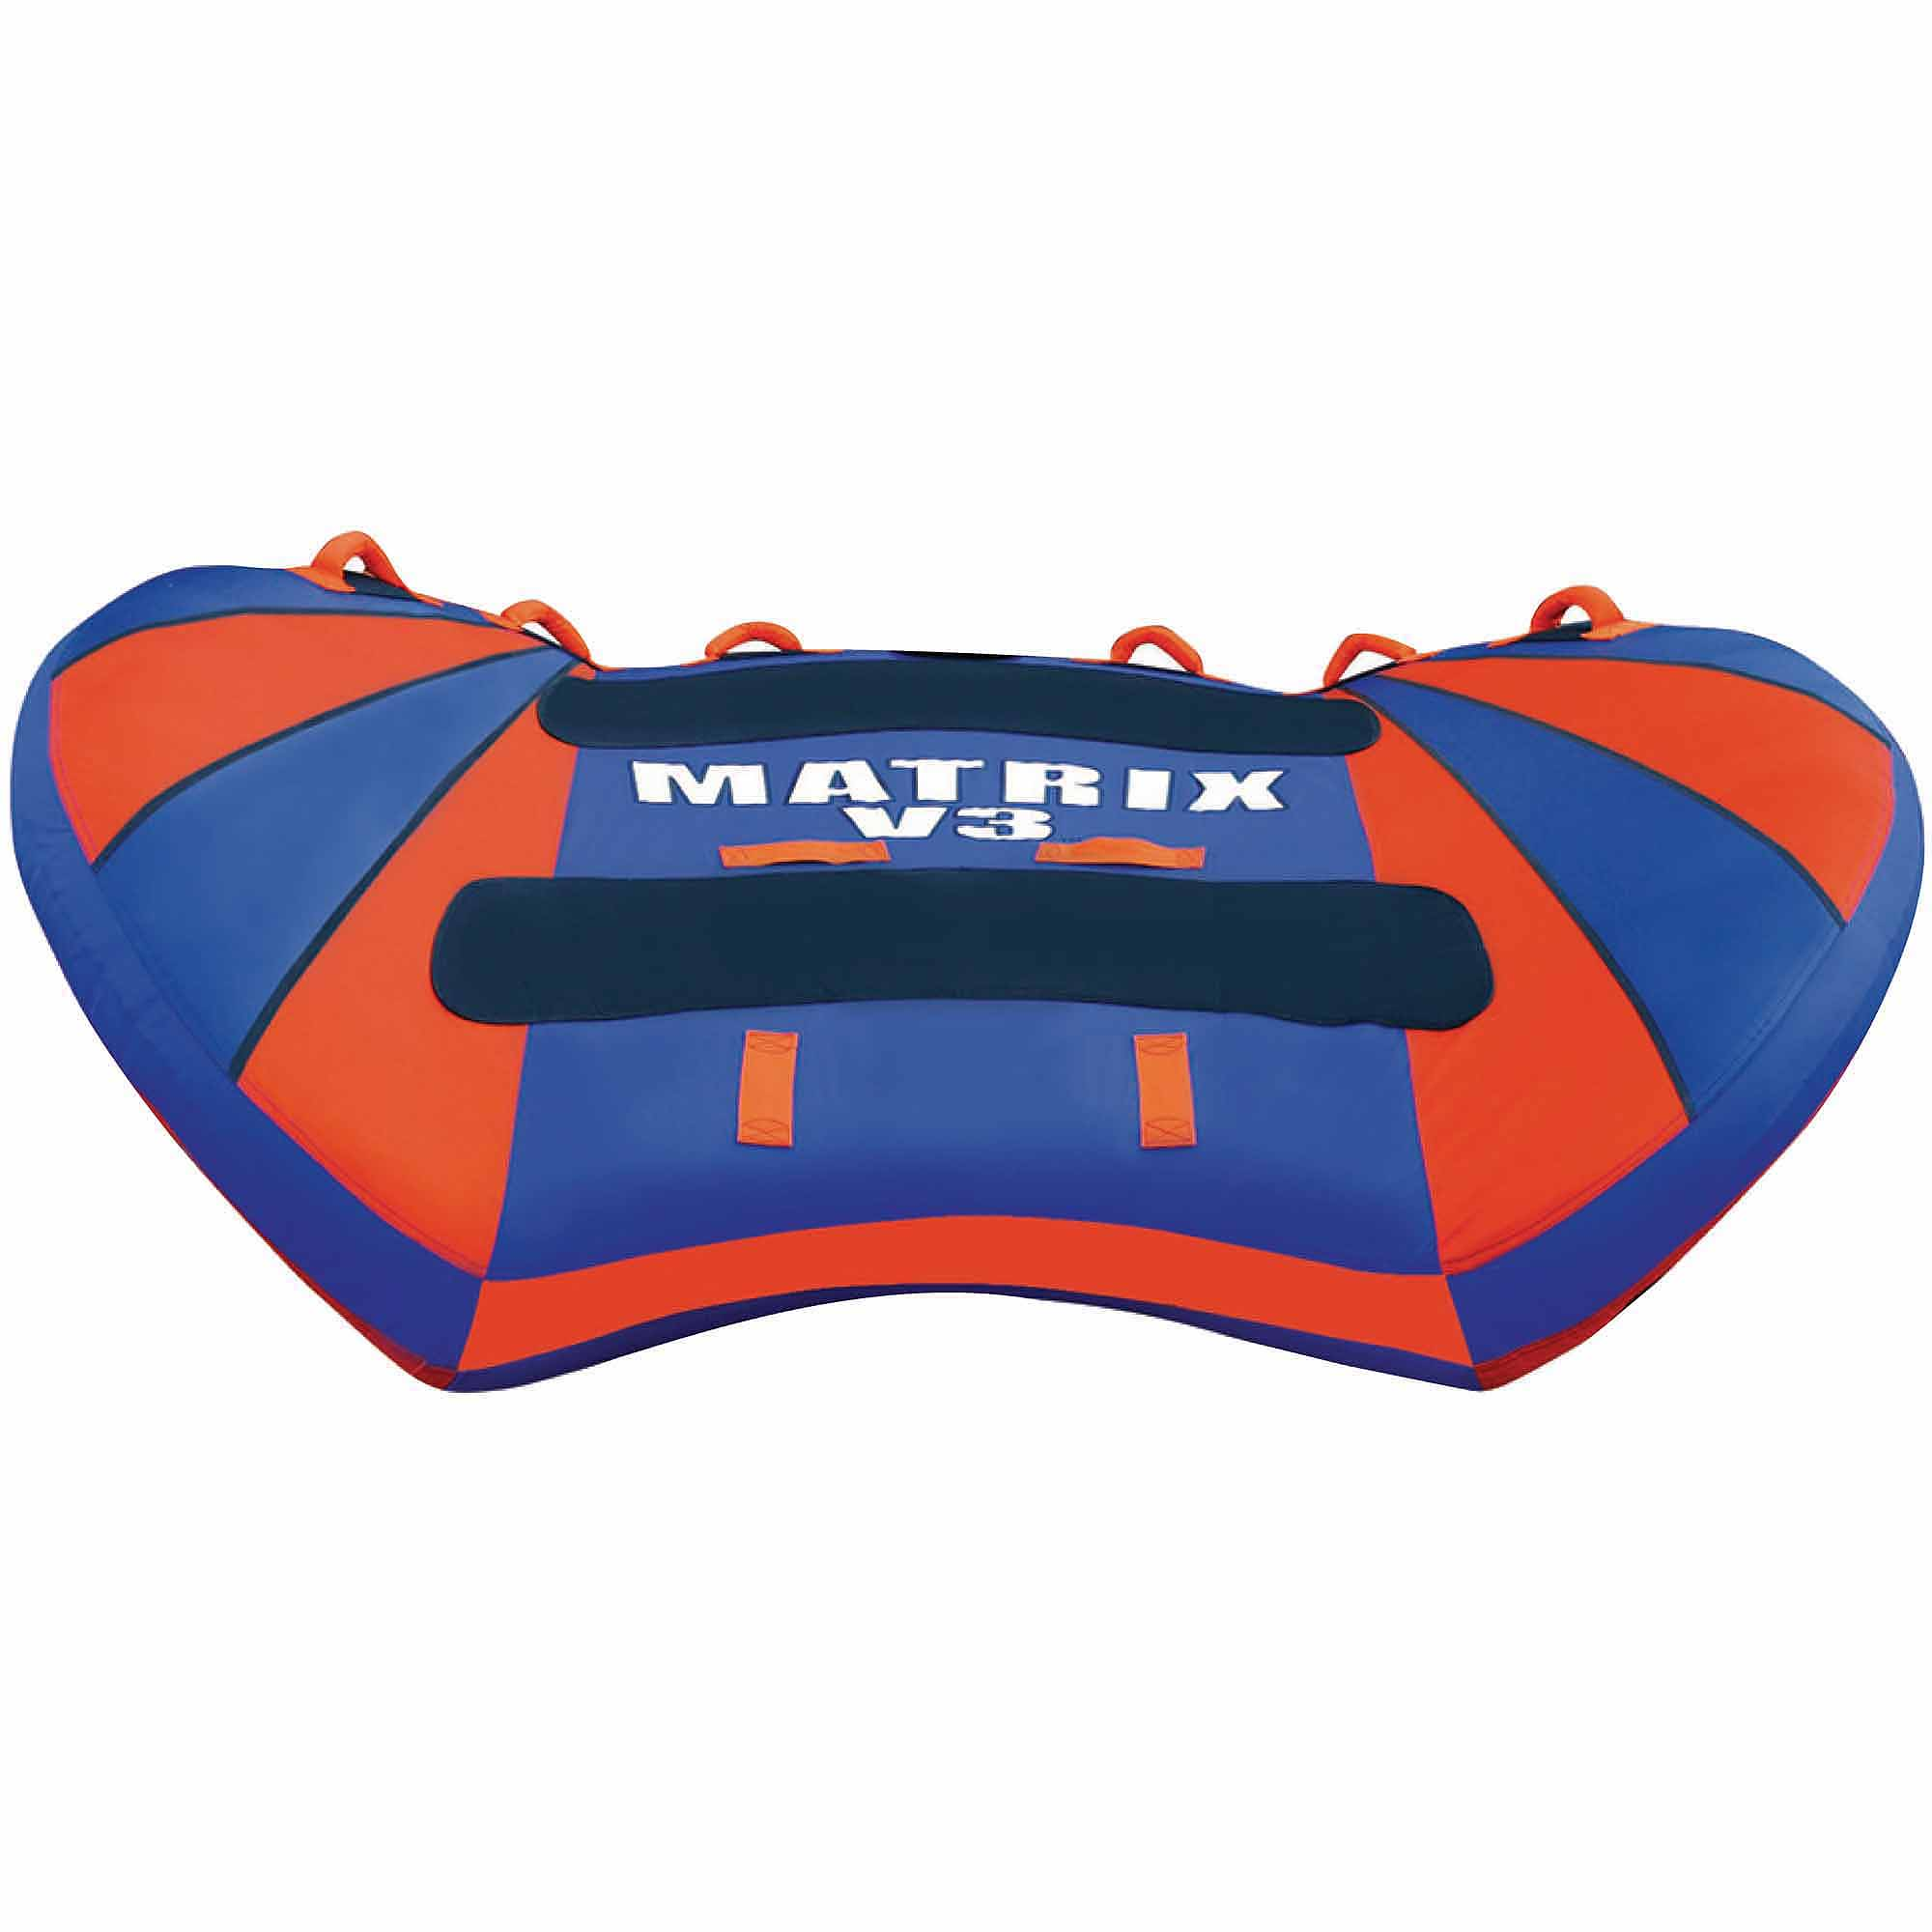 Airhead Matrix V3 Inflatable Triple Rider Towable by Kwik Tek